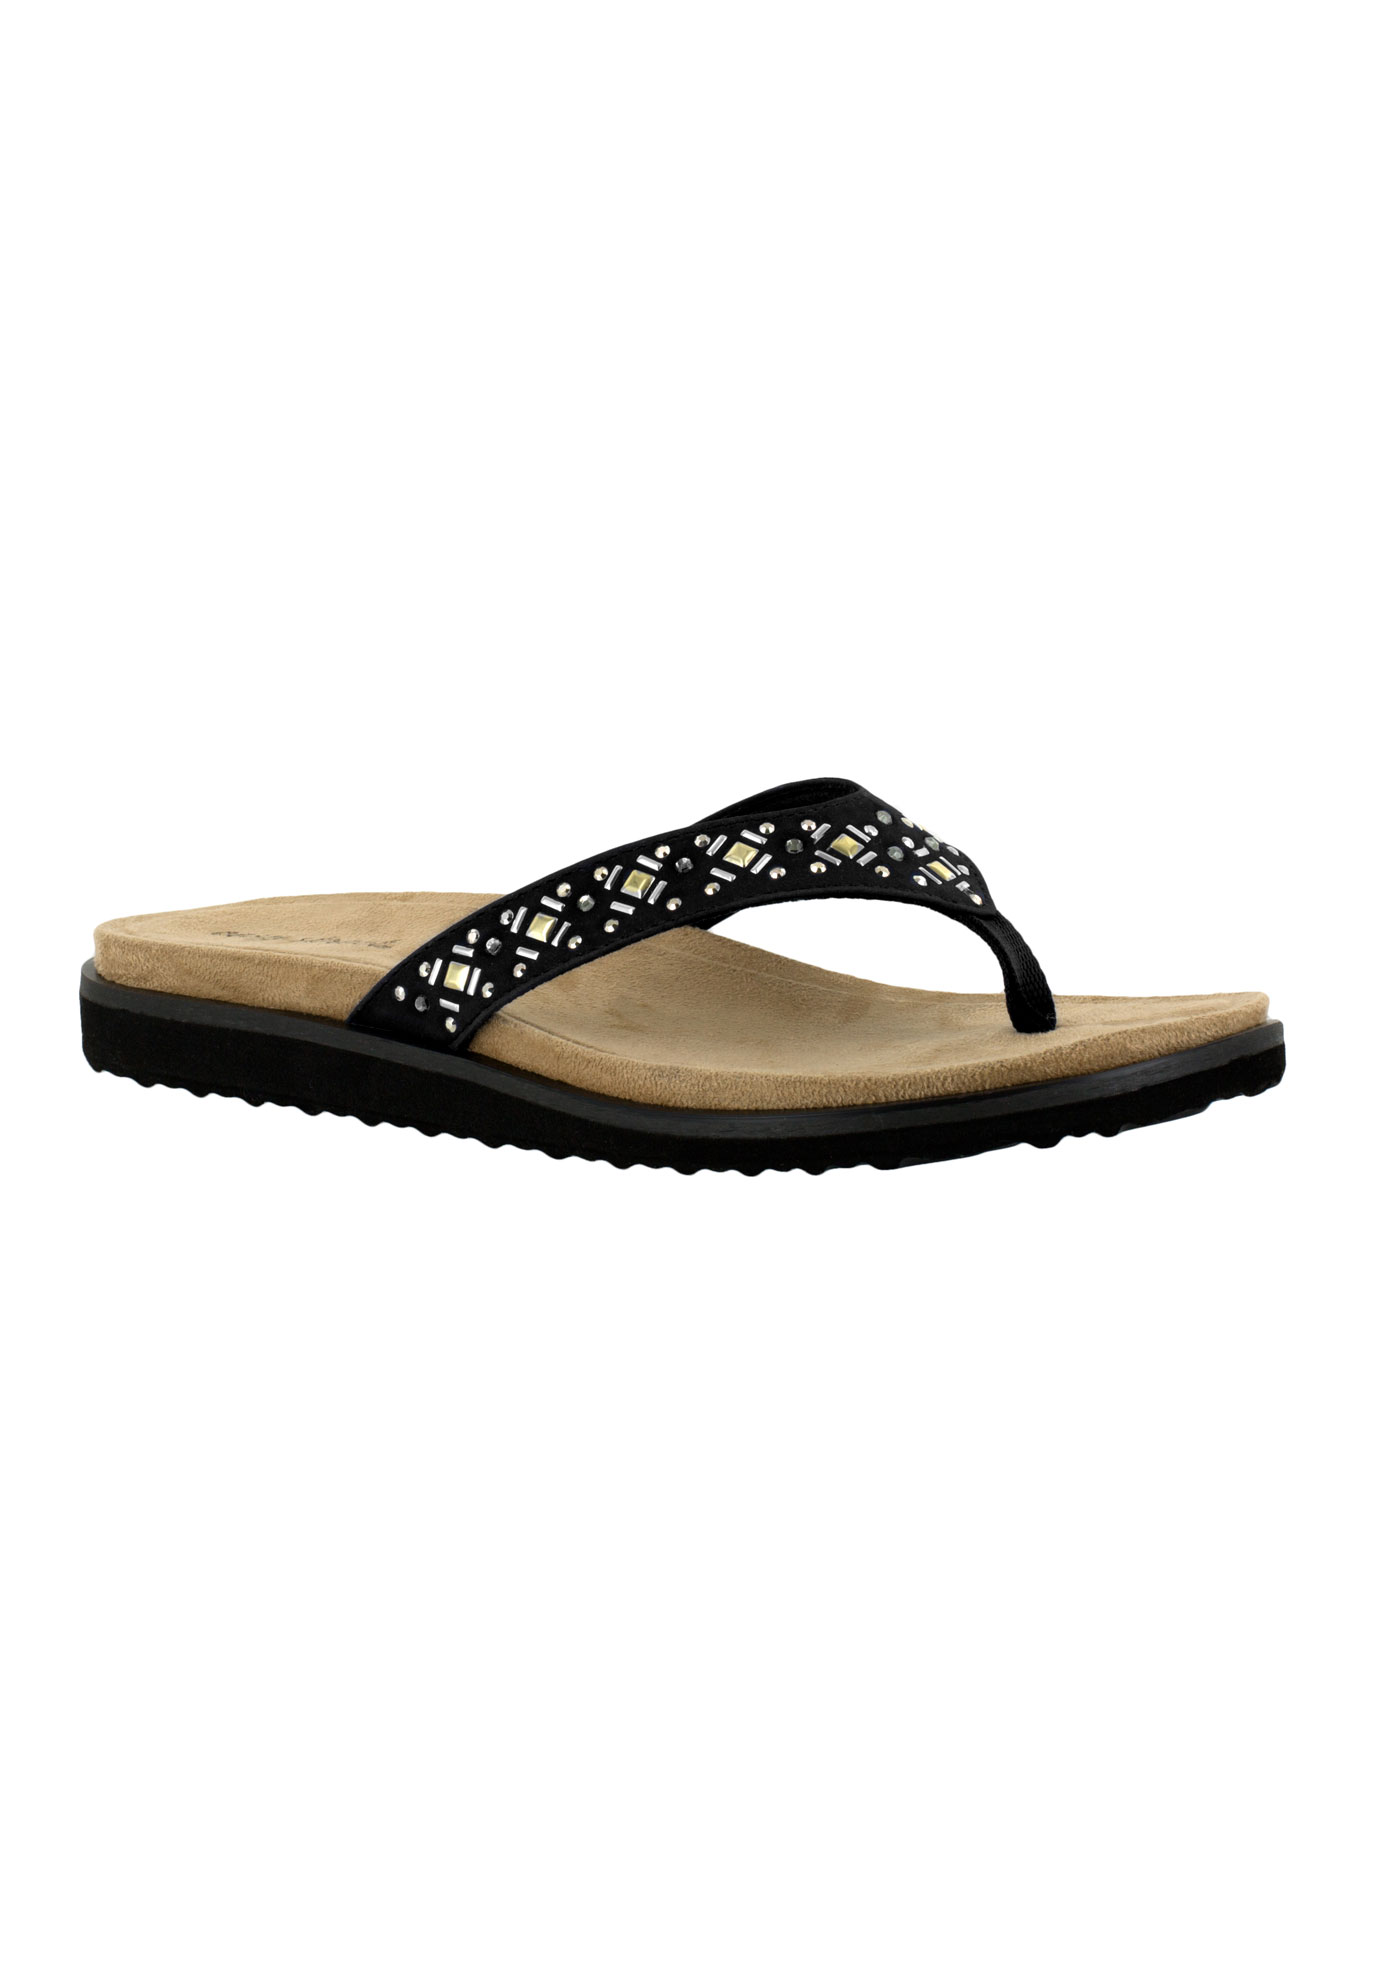 Stevie Sandals by Easy Street®,